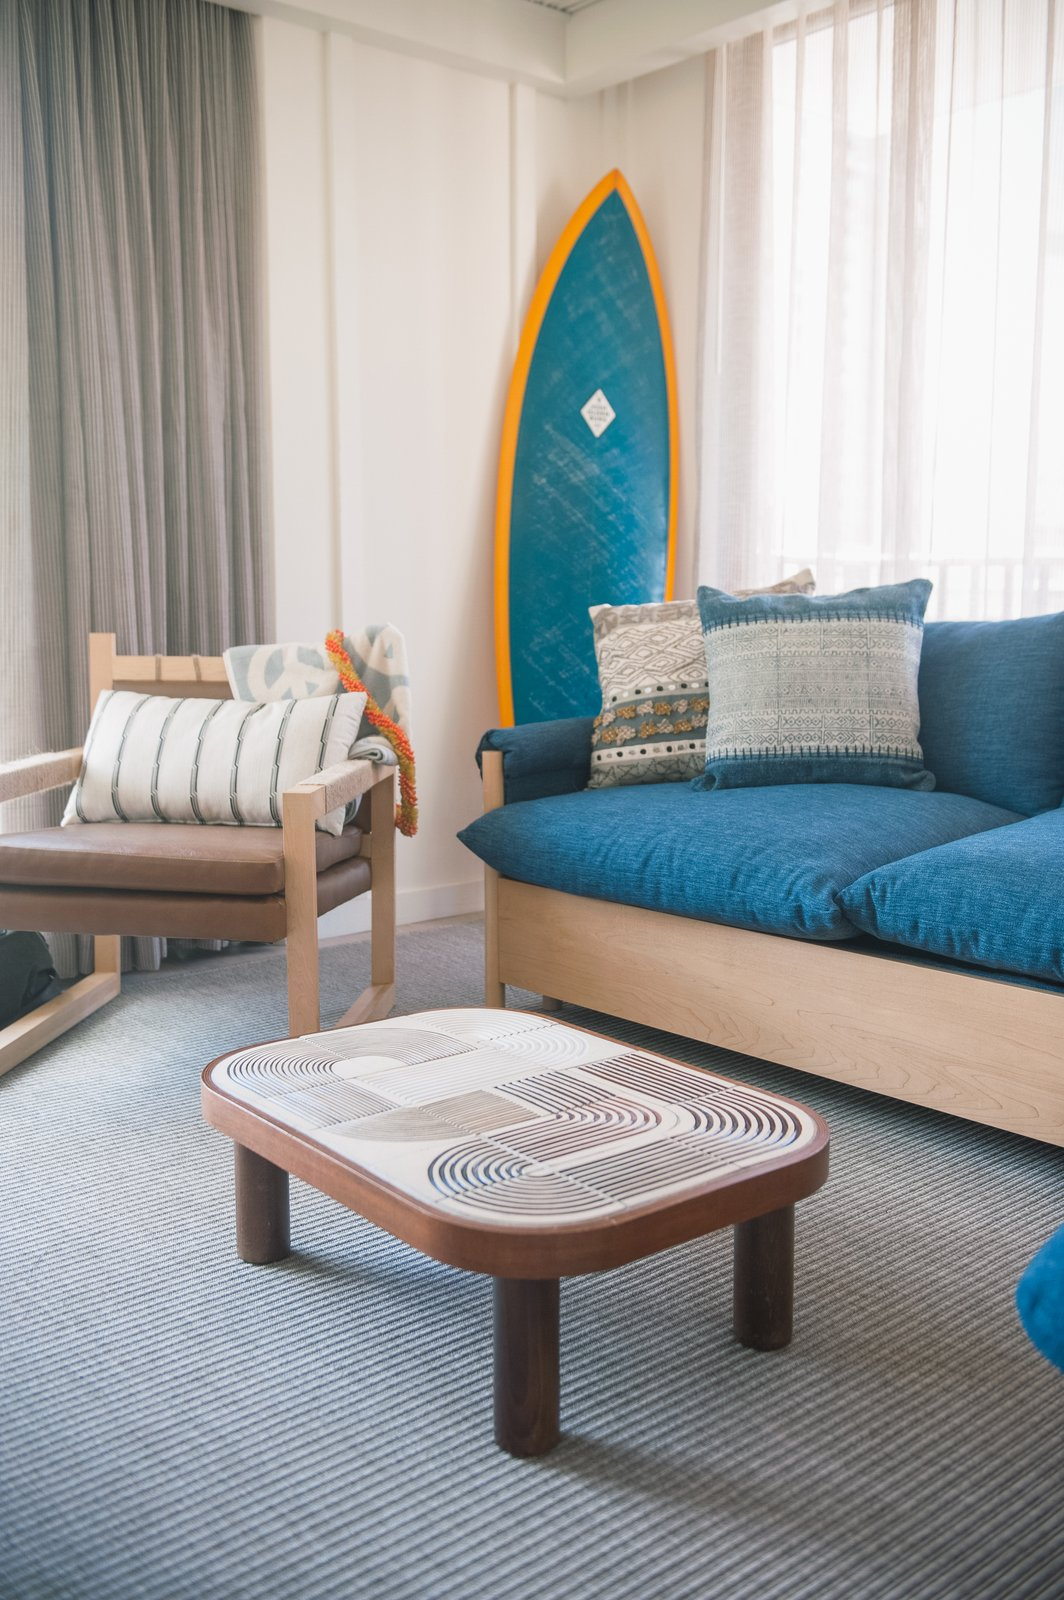 Living Room, Sofa, Chair, Coffee Tables, and Carpet Floor Studio Collective designed the 112 rooms based on the bungalows of Oahu's North Shore. They feature reed ceilings, batten walls, local art, and bespoke coffee tables that are topped with ceramic tiles.  Photo 11 of 14 in This Surf-Inspired Hotel Celebrates Waikiki's Creative Spirit and its Midcentury Roots